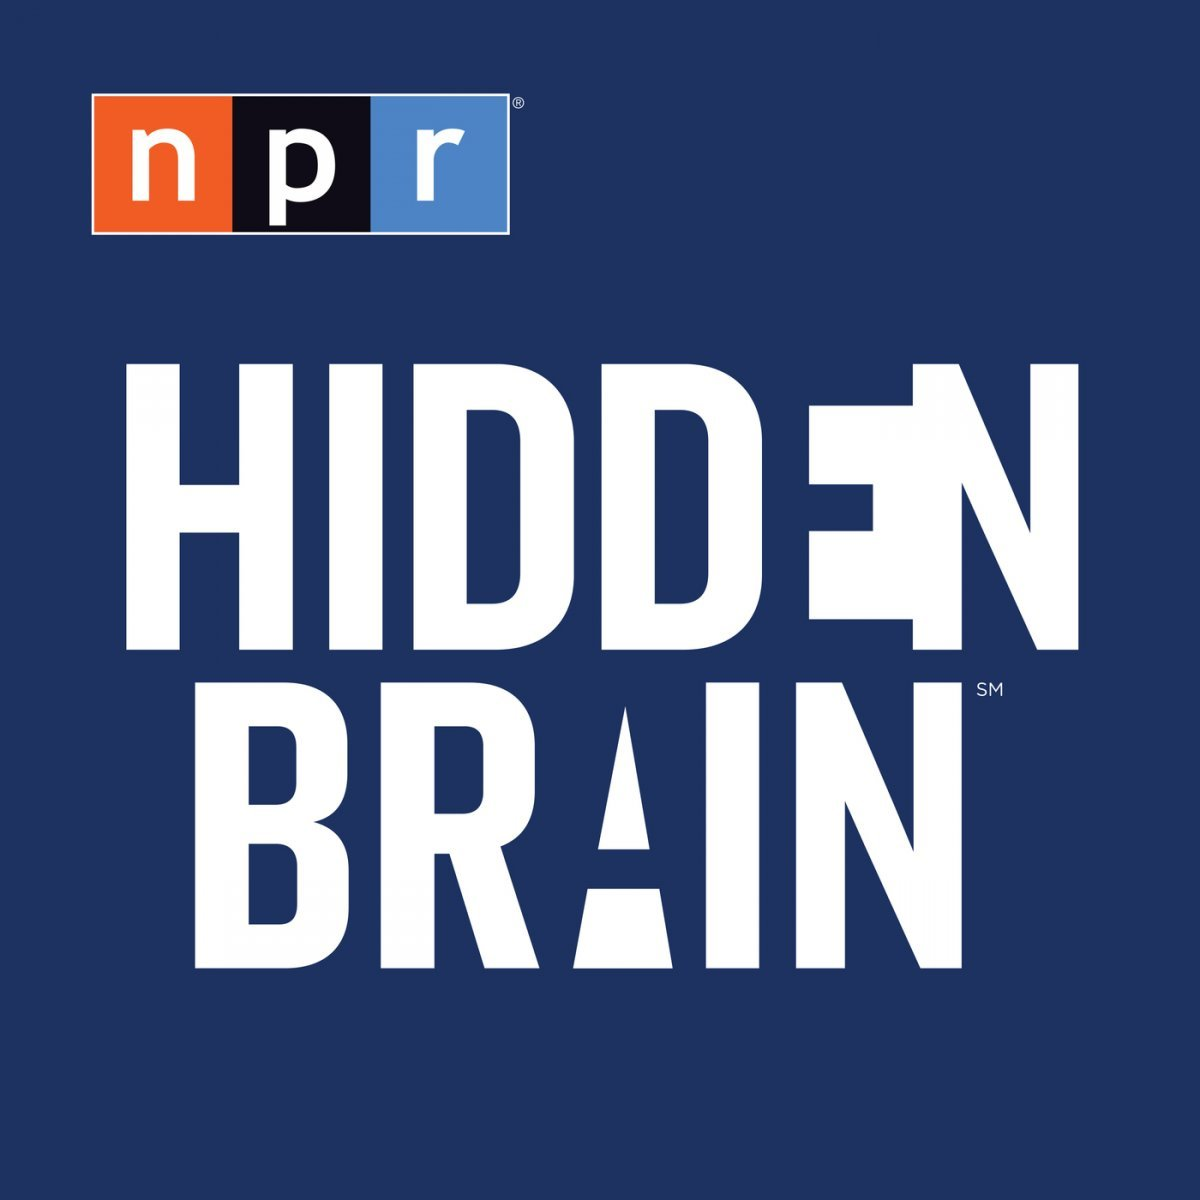 'Hidden Brain' explains the surprising psychological forces behind everyday human behavior.